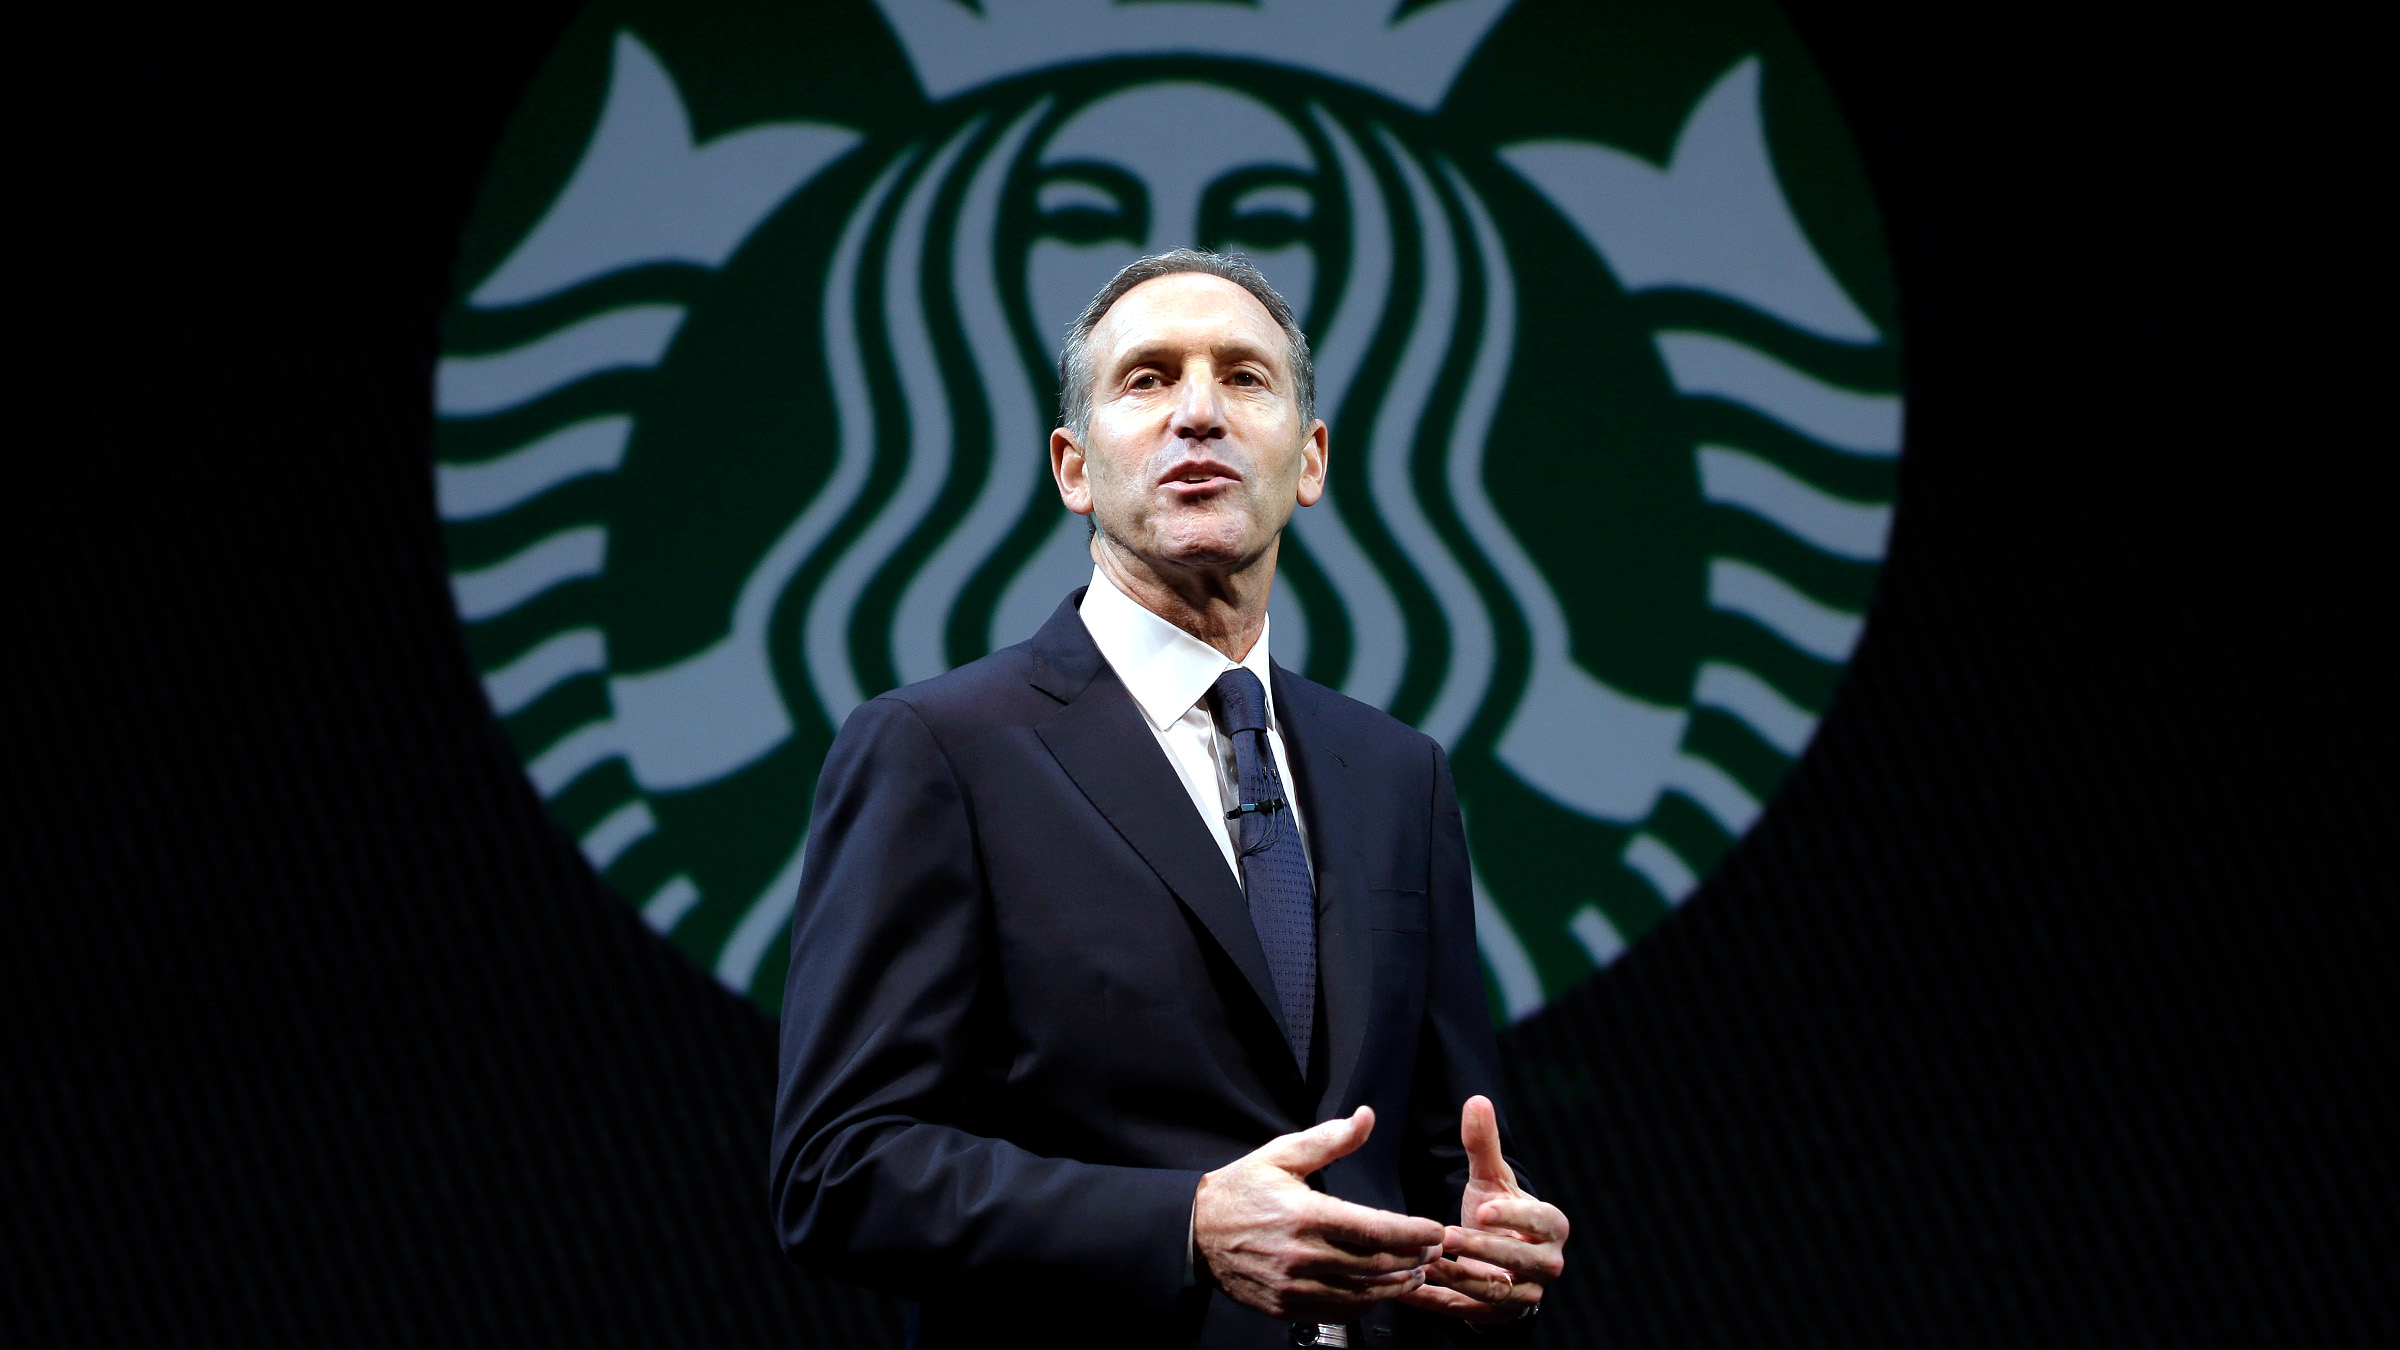 In this Wednesday, March 20, 2013, file photo, Starbucks CEO Howard Schultz speaks at the company's annual shareholders meeting,in Seattle, Wash. Starbucks Corp. reports quarterly financial results after the market closes on Thursday, April 25, 2013.